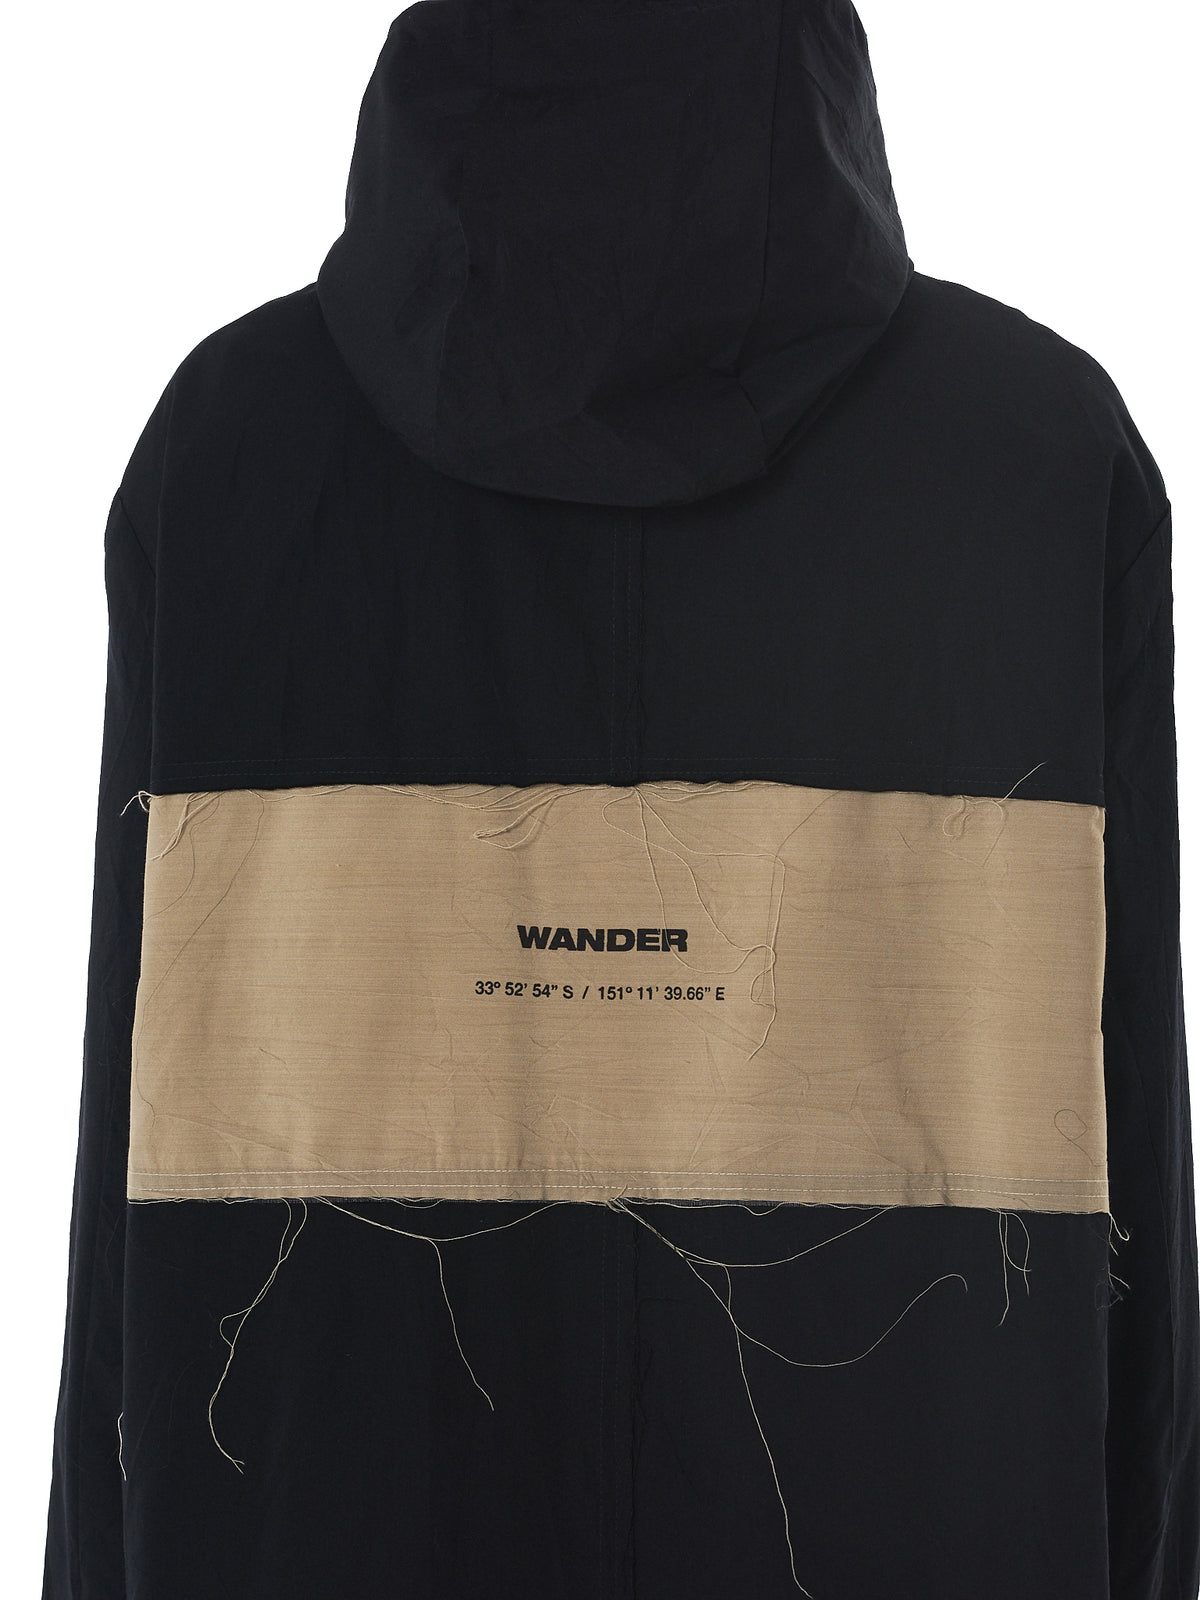 Song For The Mute 'Wander' Parka - Hlorenzo Detail 2